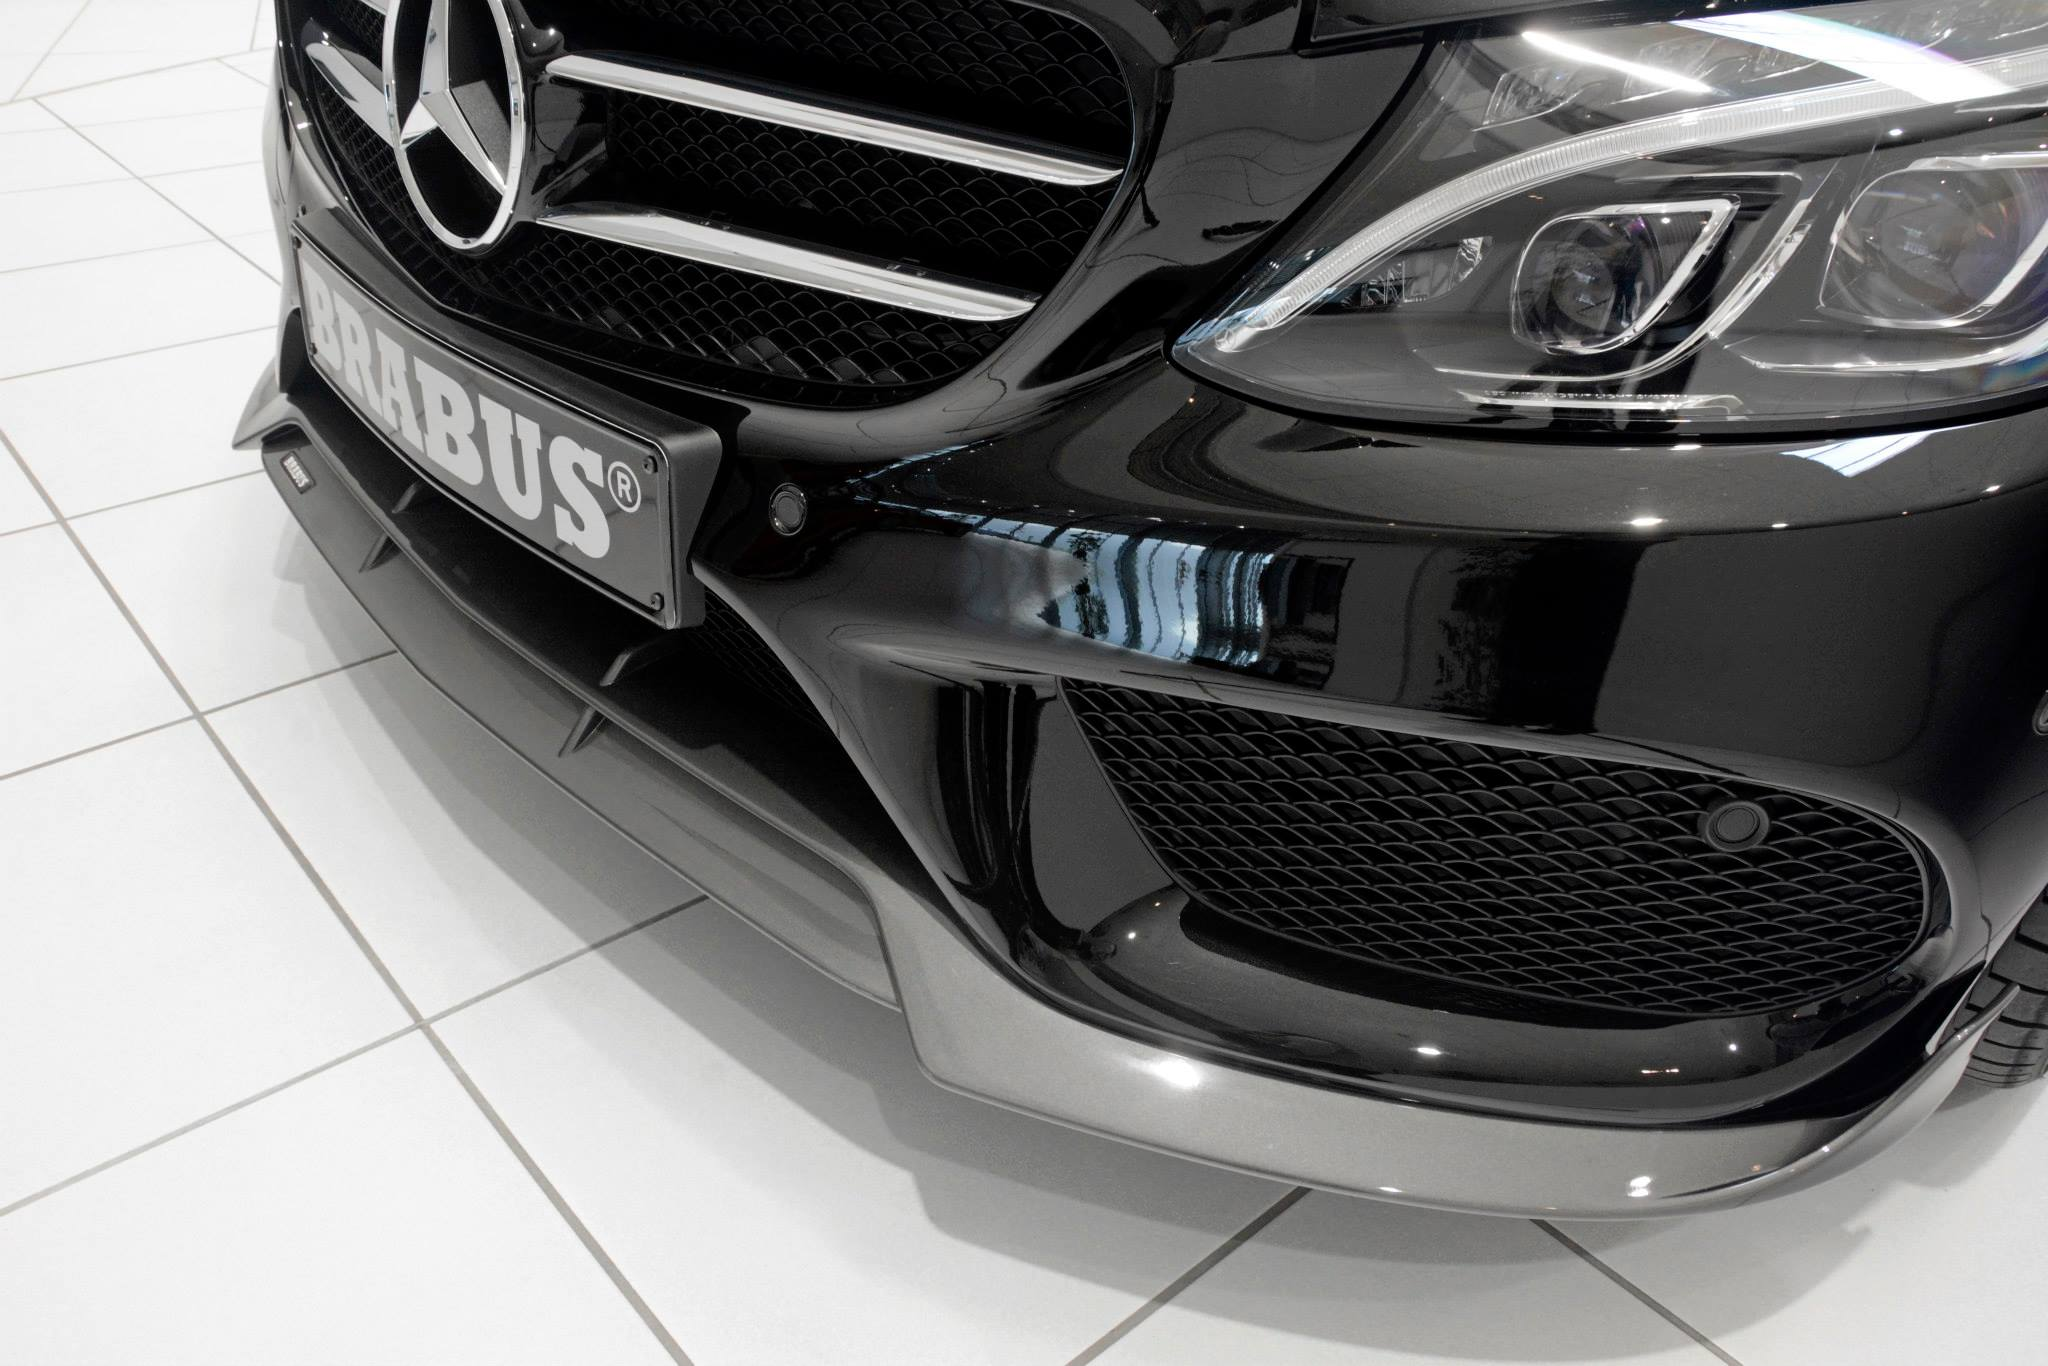 Brabus Tuning Program For W205 C Class With Amg Sports